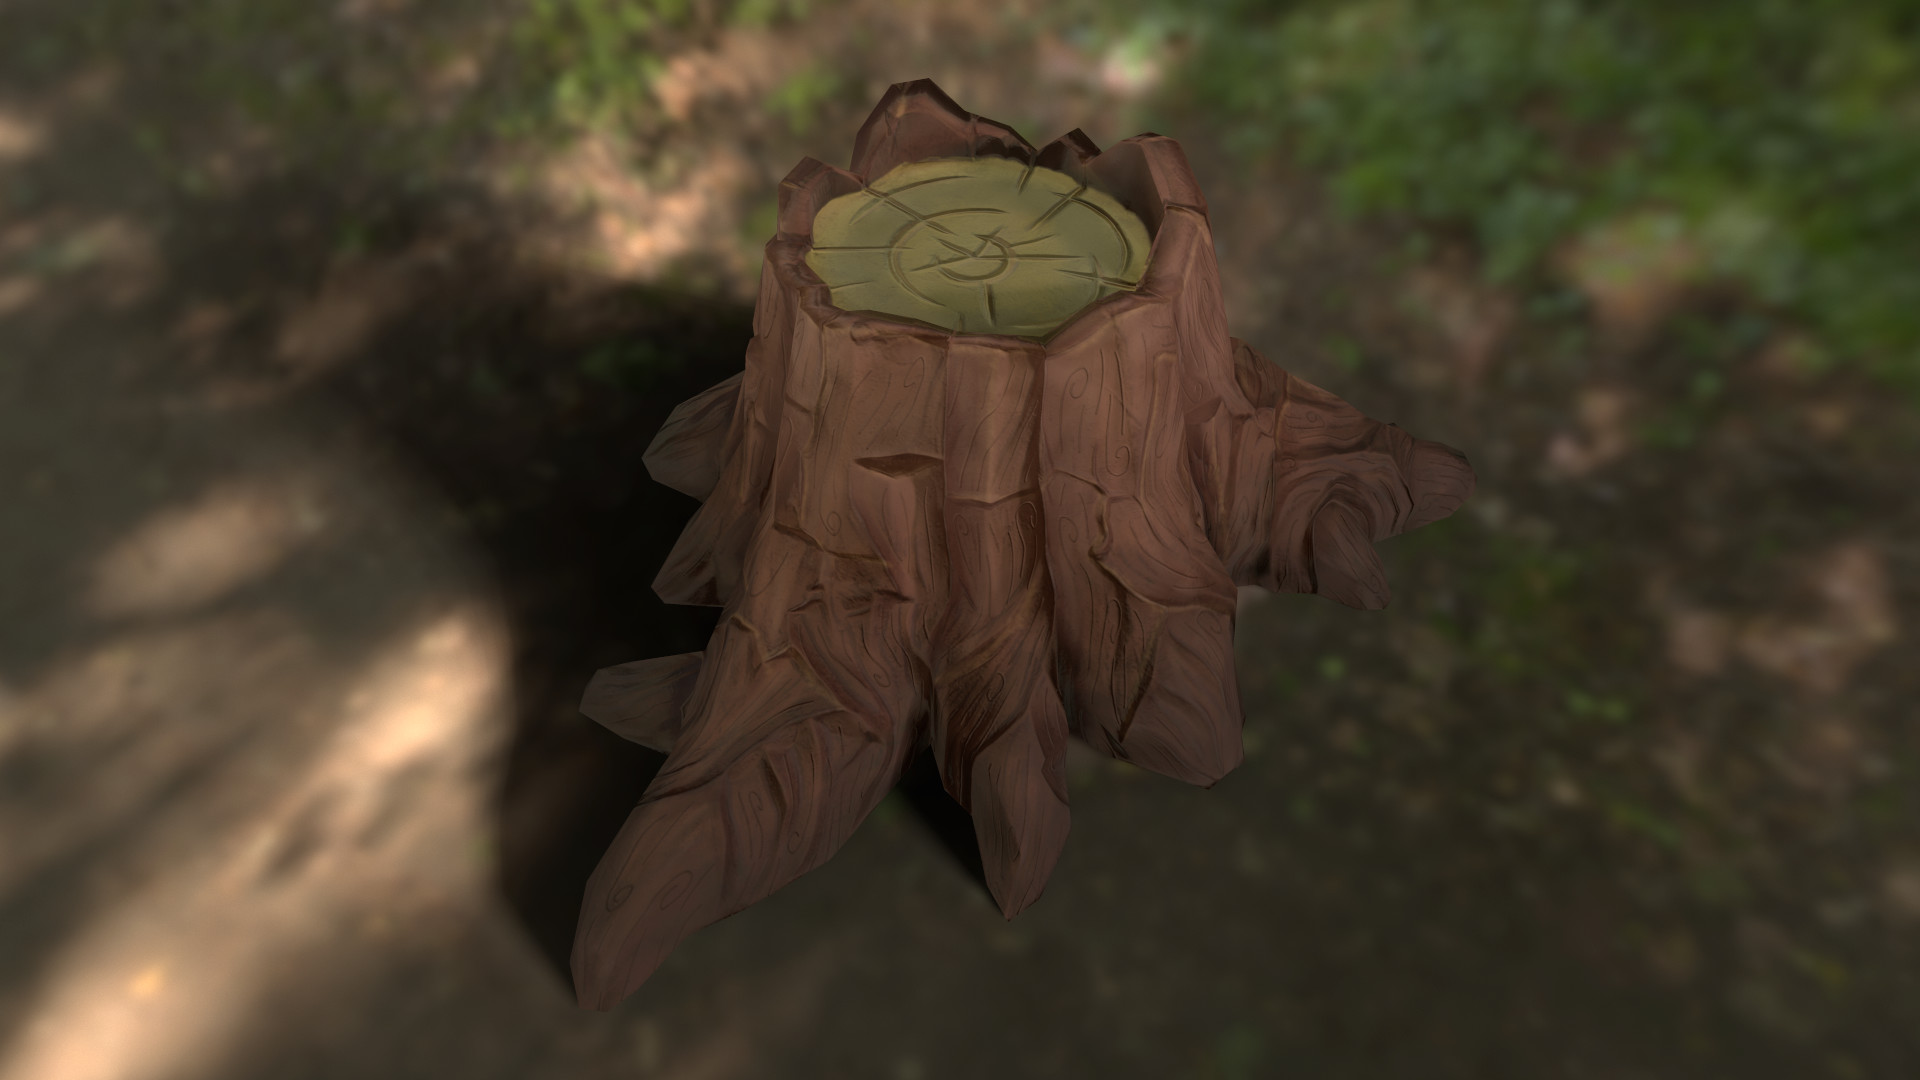 Gianluca Rubino Cartoon Tree Stump Couple of cartoon stylized textures for personal project. gianluca rubino cartoon tree stump